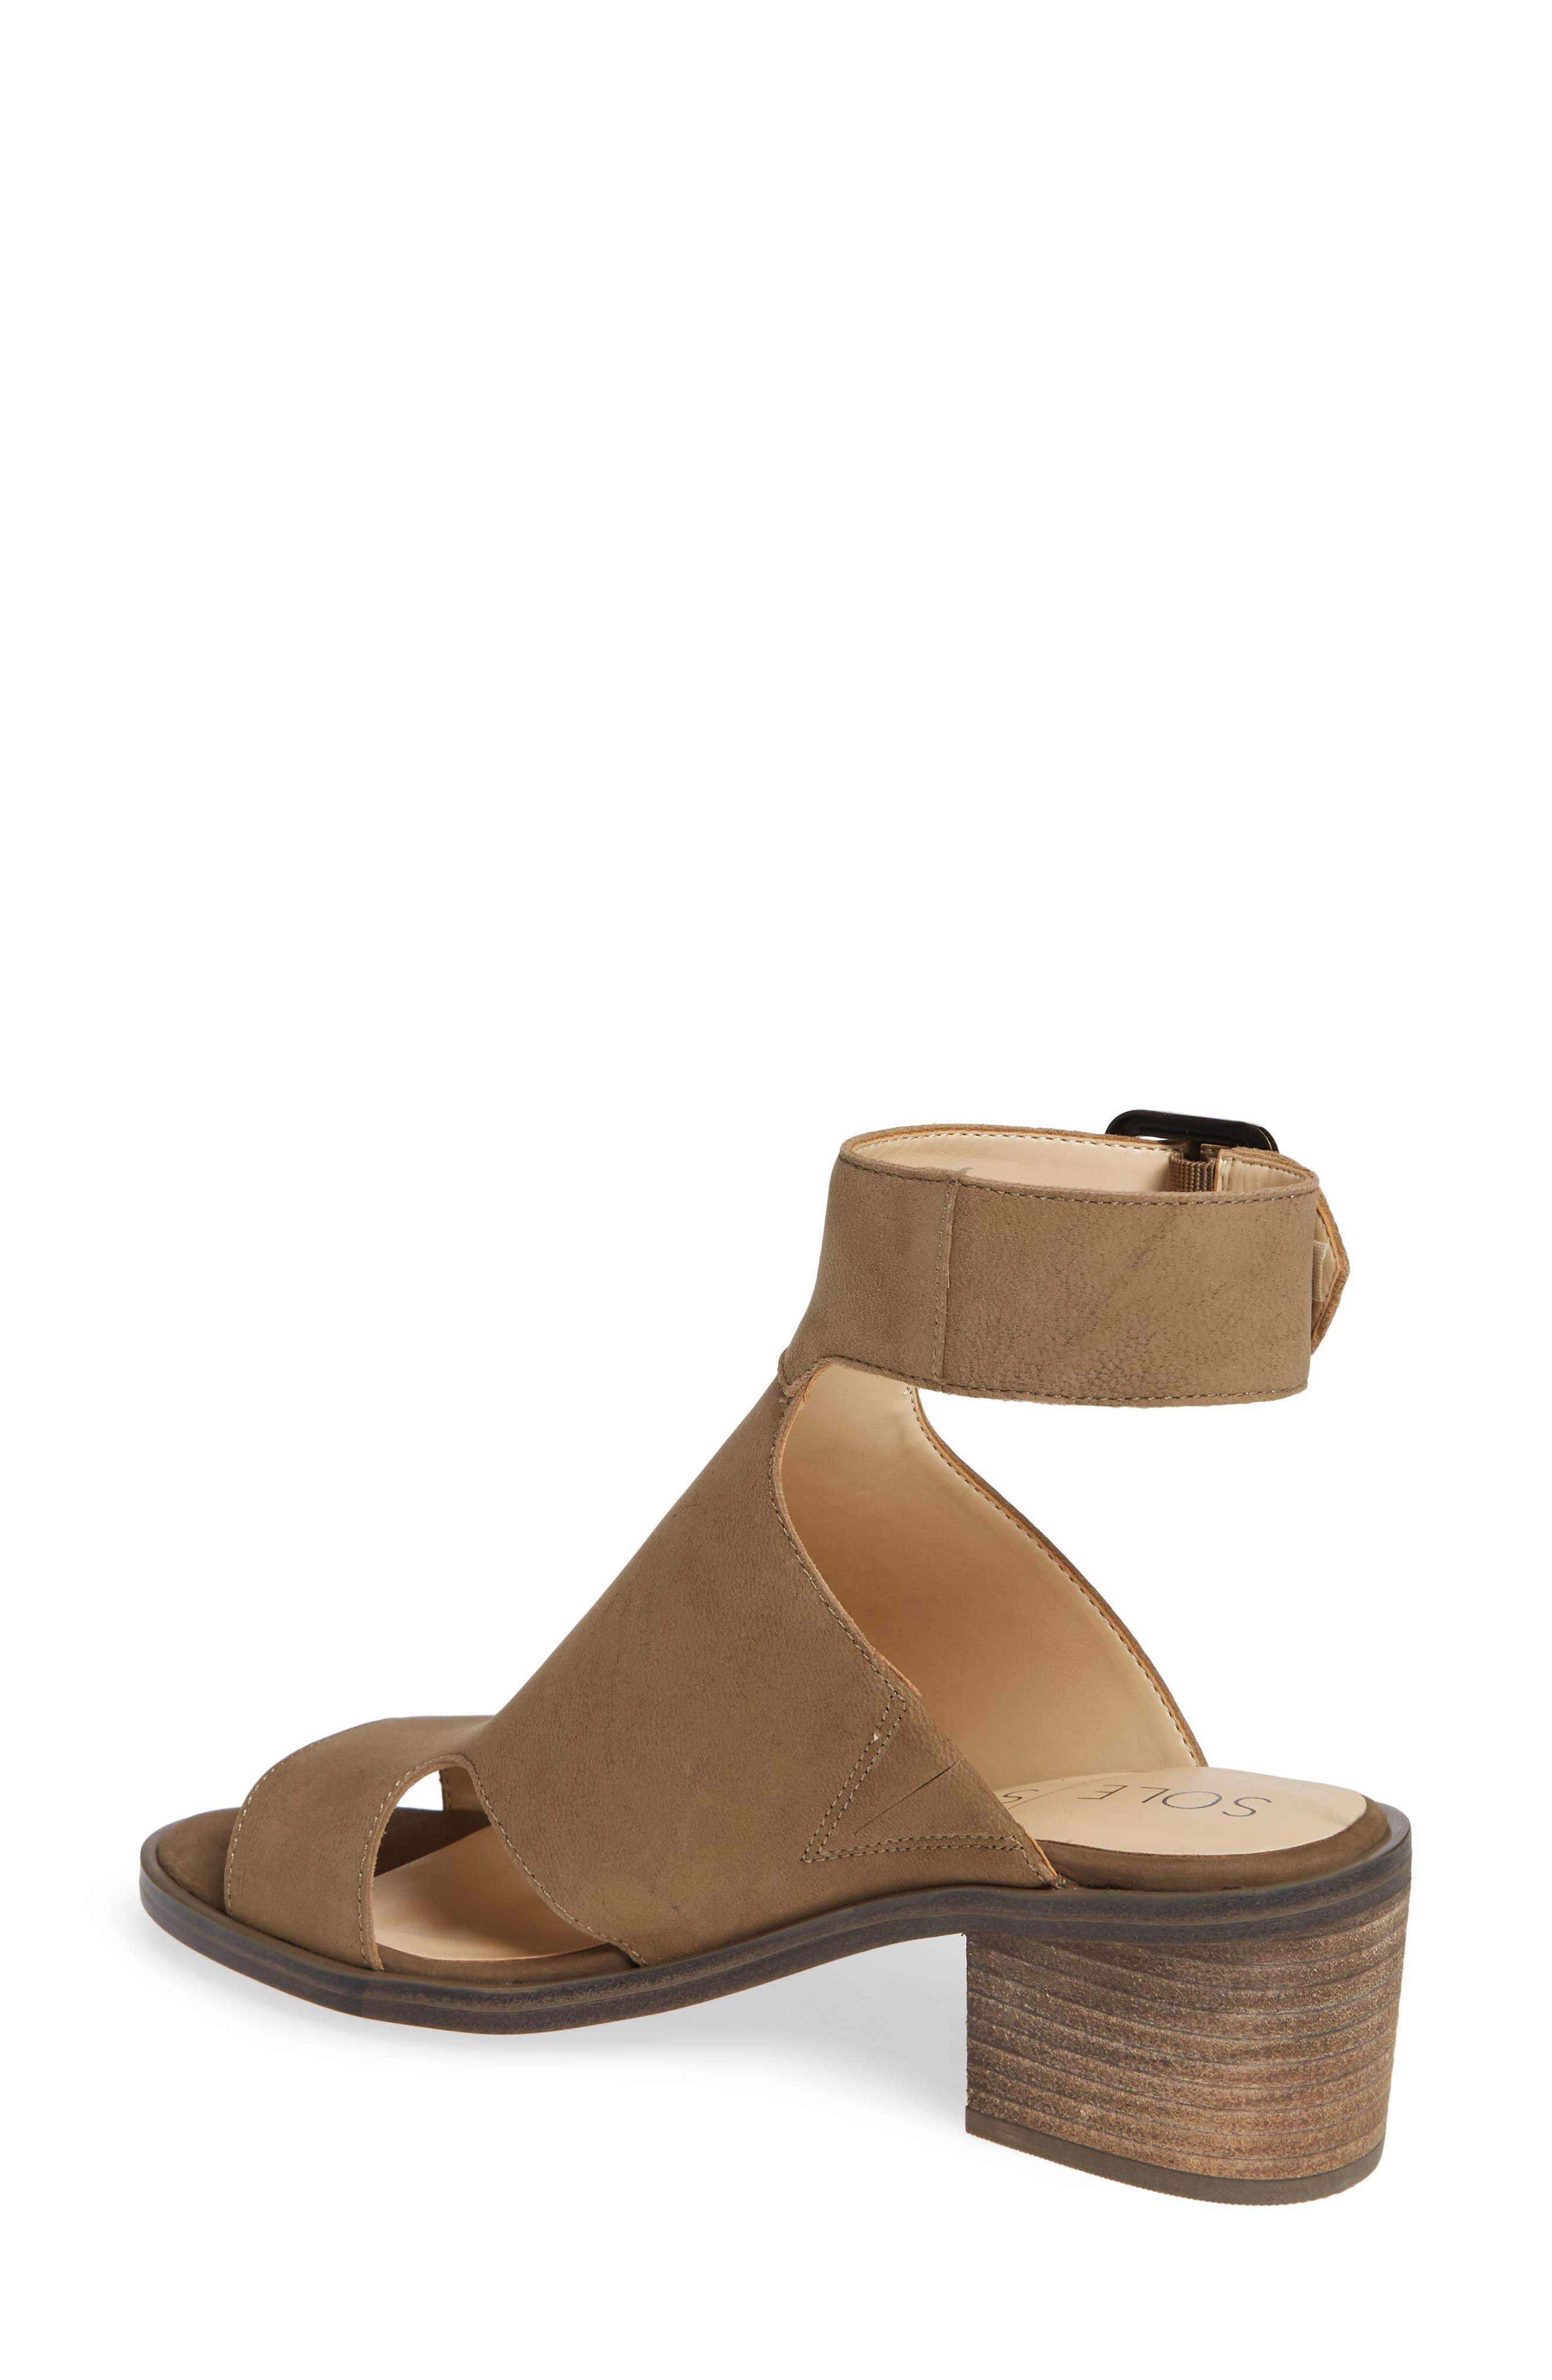 Tally Ankle Cuff Sandal,                             Alternate thumbnail 2, color,                             ANTIQUE GREEN NUBUCK